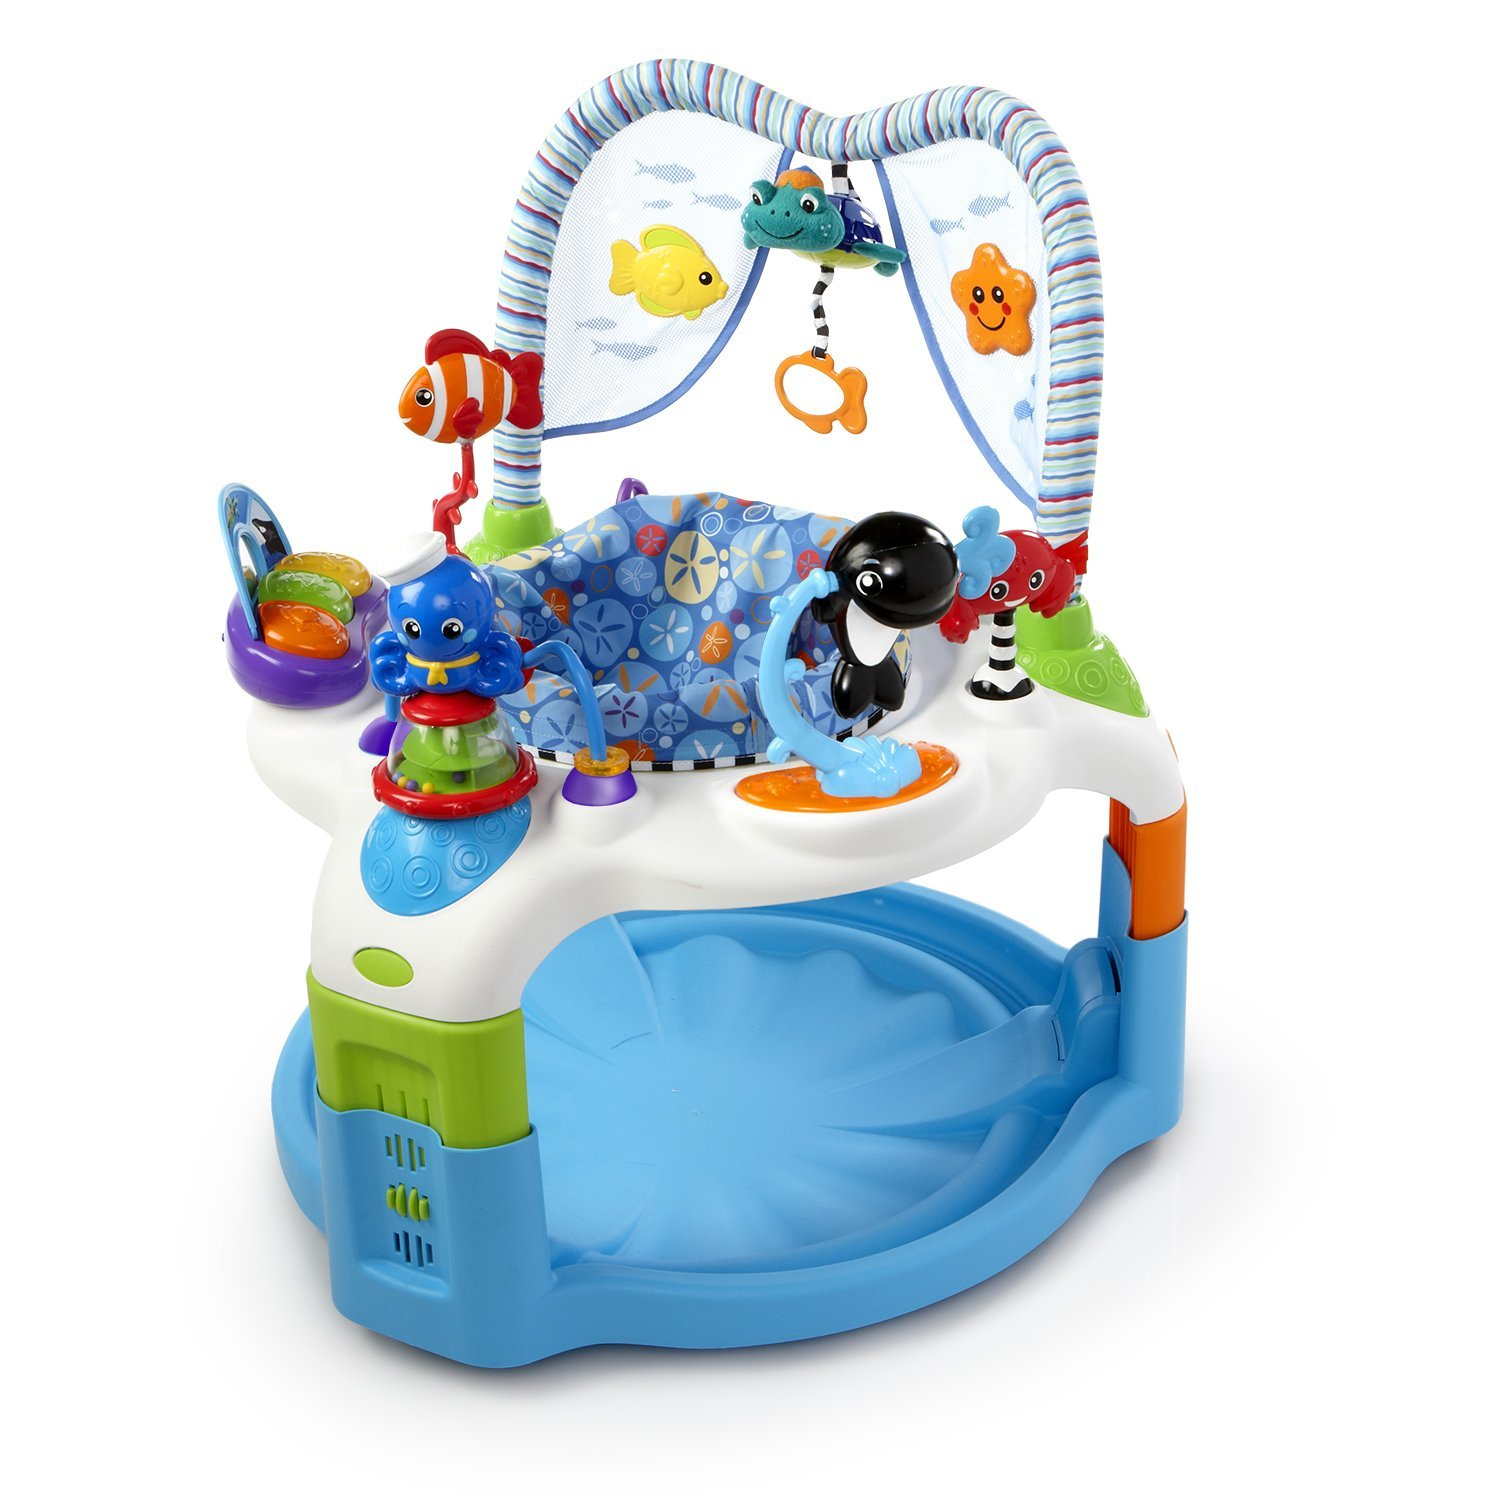 gh t p ng baby einstein baby neptune activity center. Black Bedroom Furniture Sets. Home Design Ideas